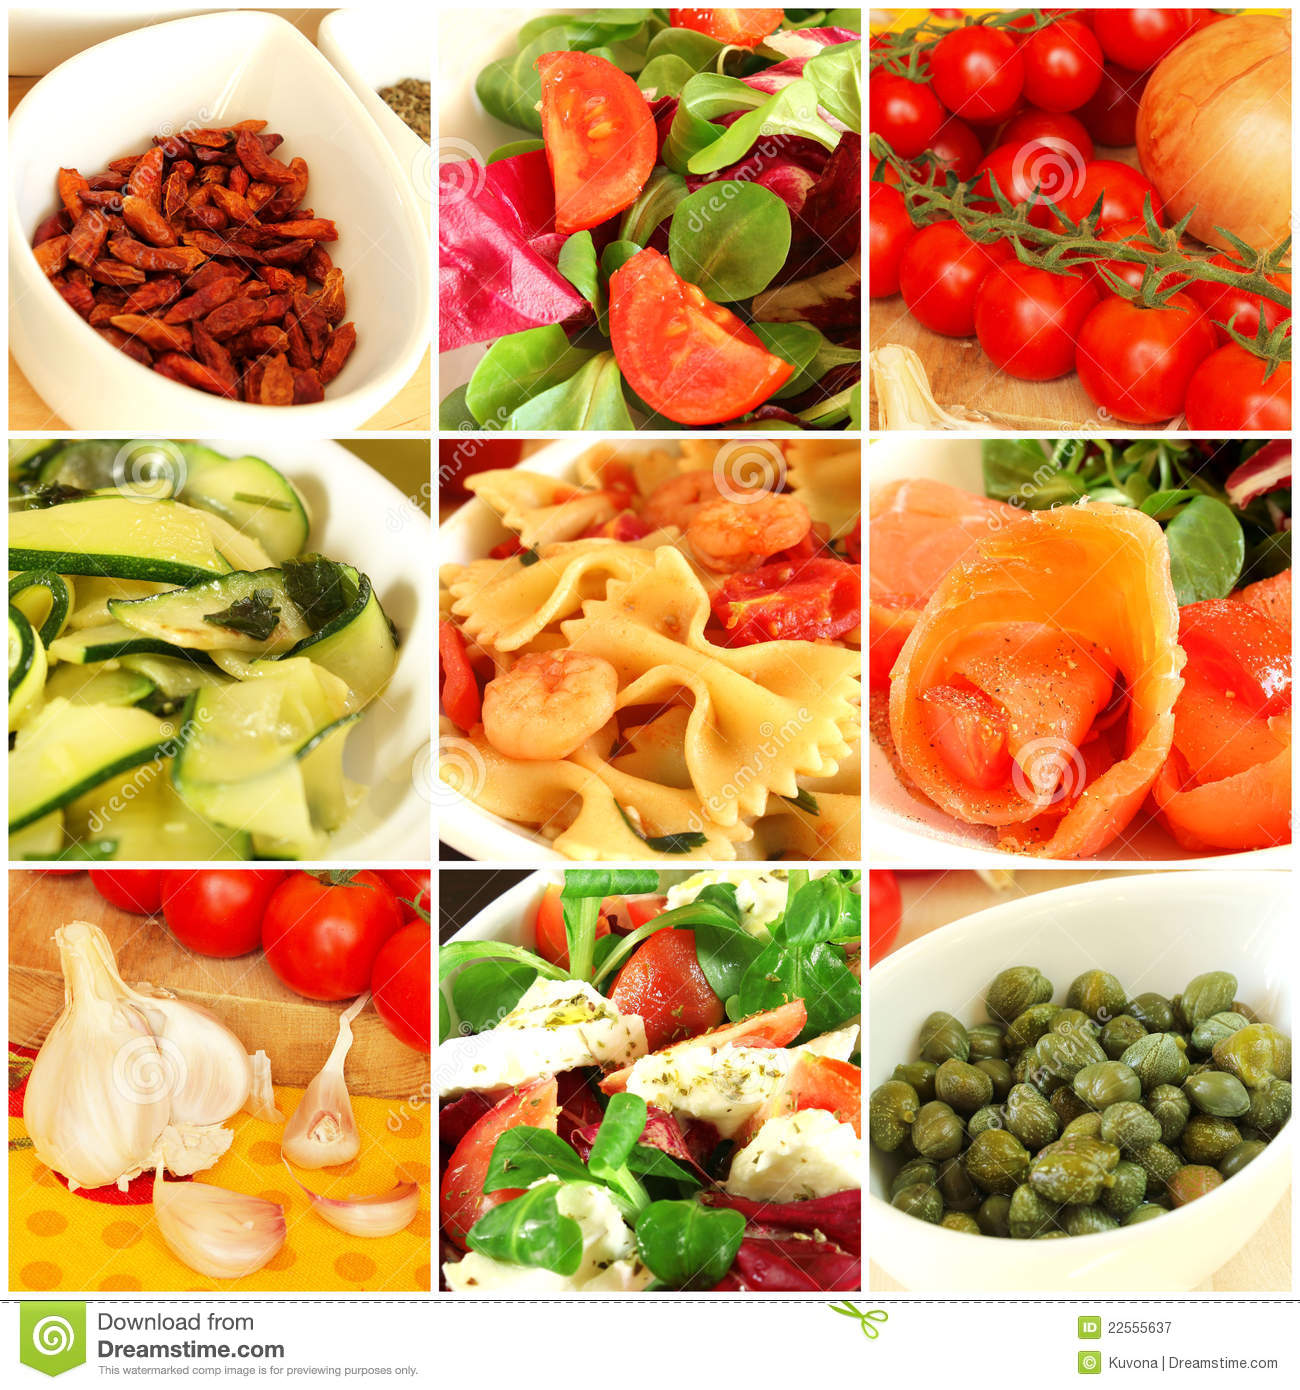 Royalty Free Stock Photography Italian Food Collage Image22555637